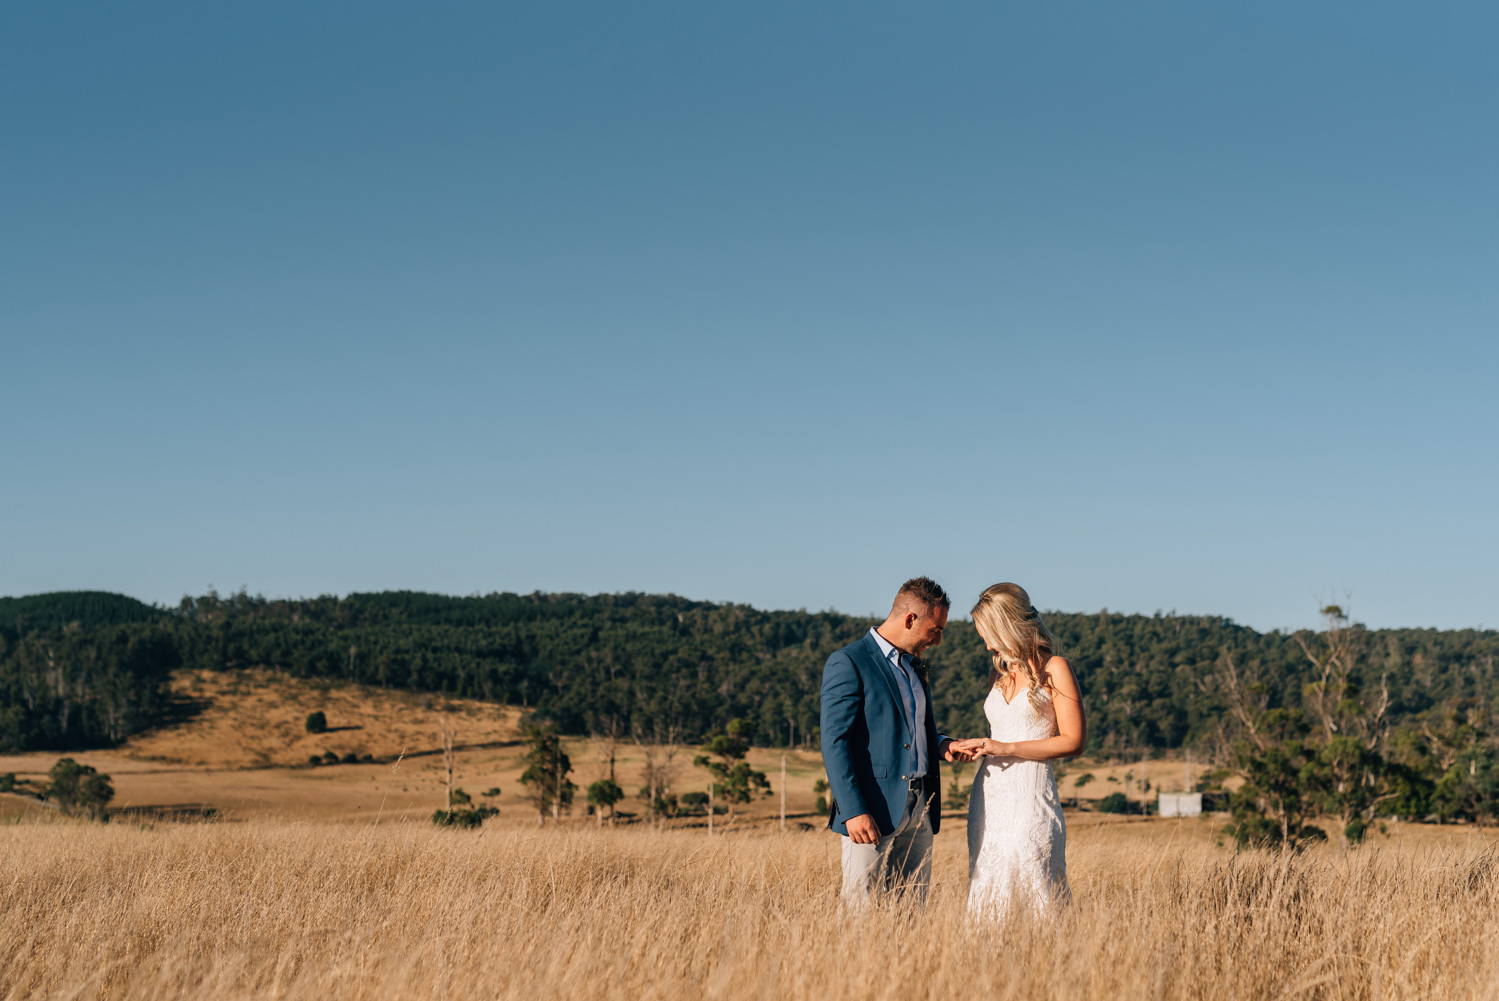 Launceston-Wedding-Photographer-82.jpg